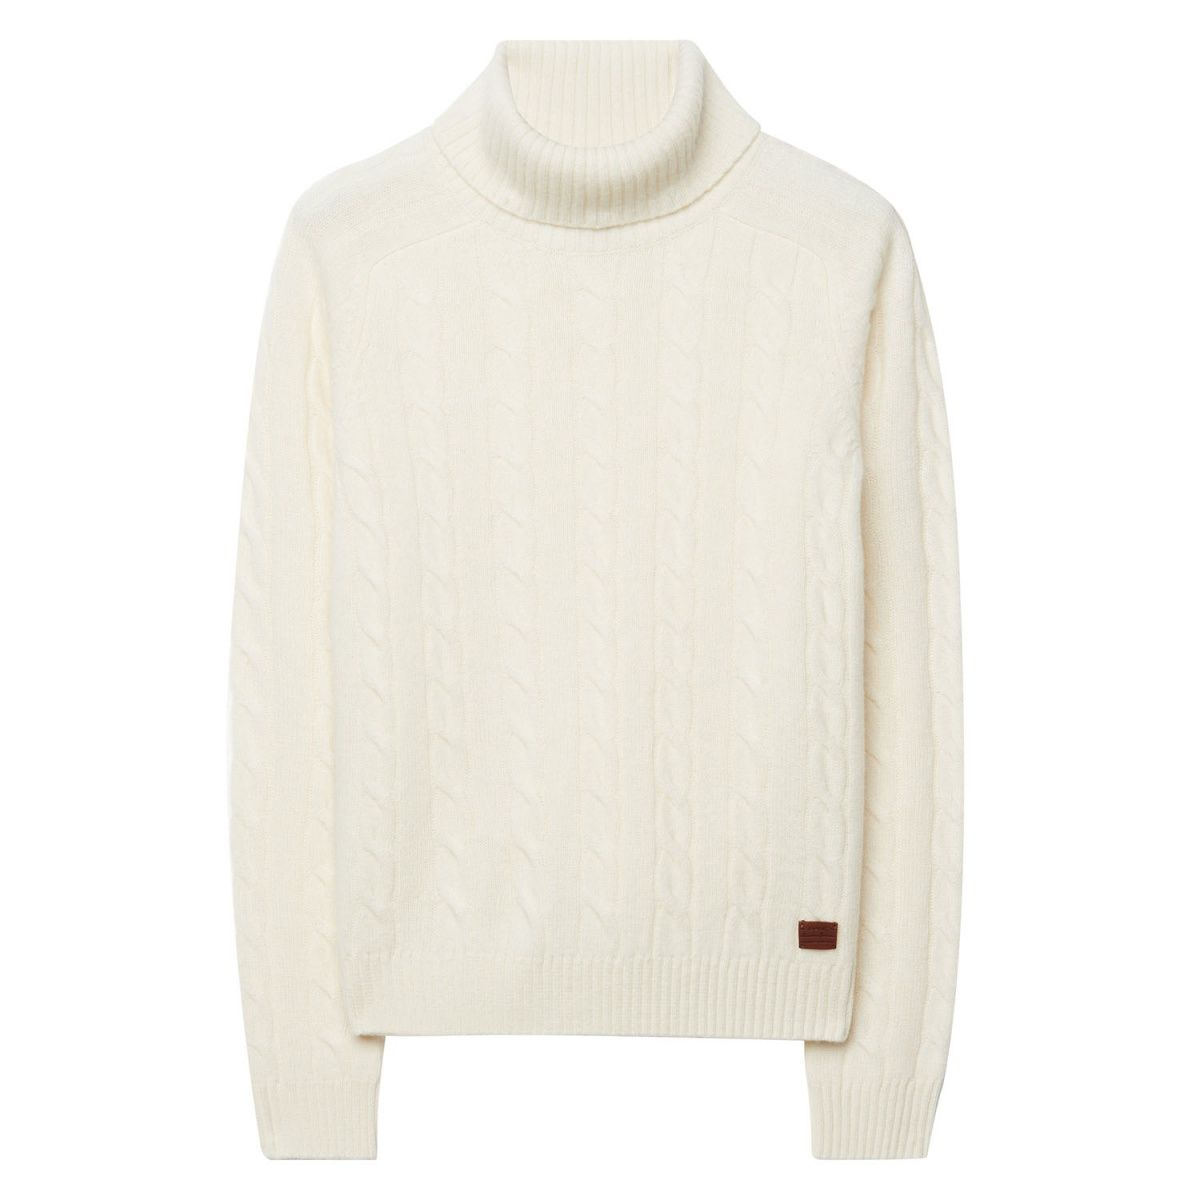 Womens Chunky Cable Sweater Jumper GANT Newest Sale Online oJlgf0cm